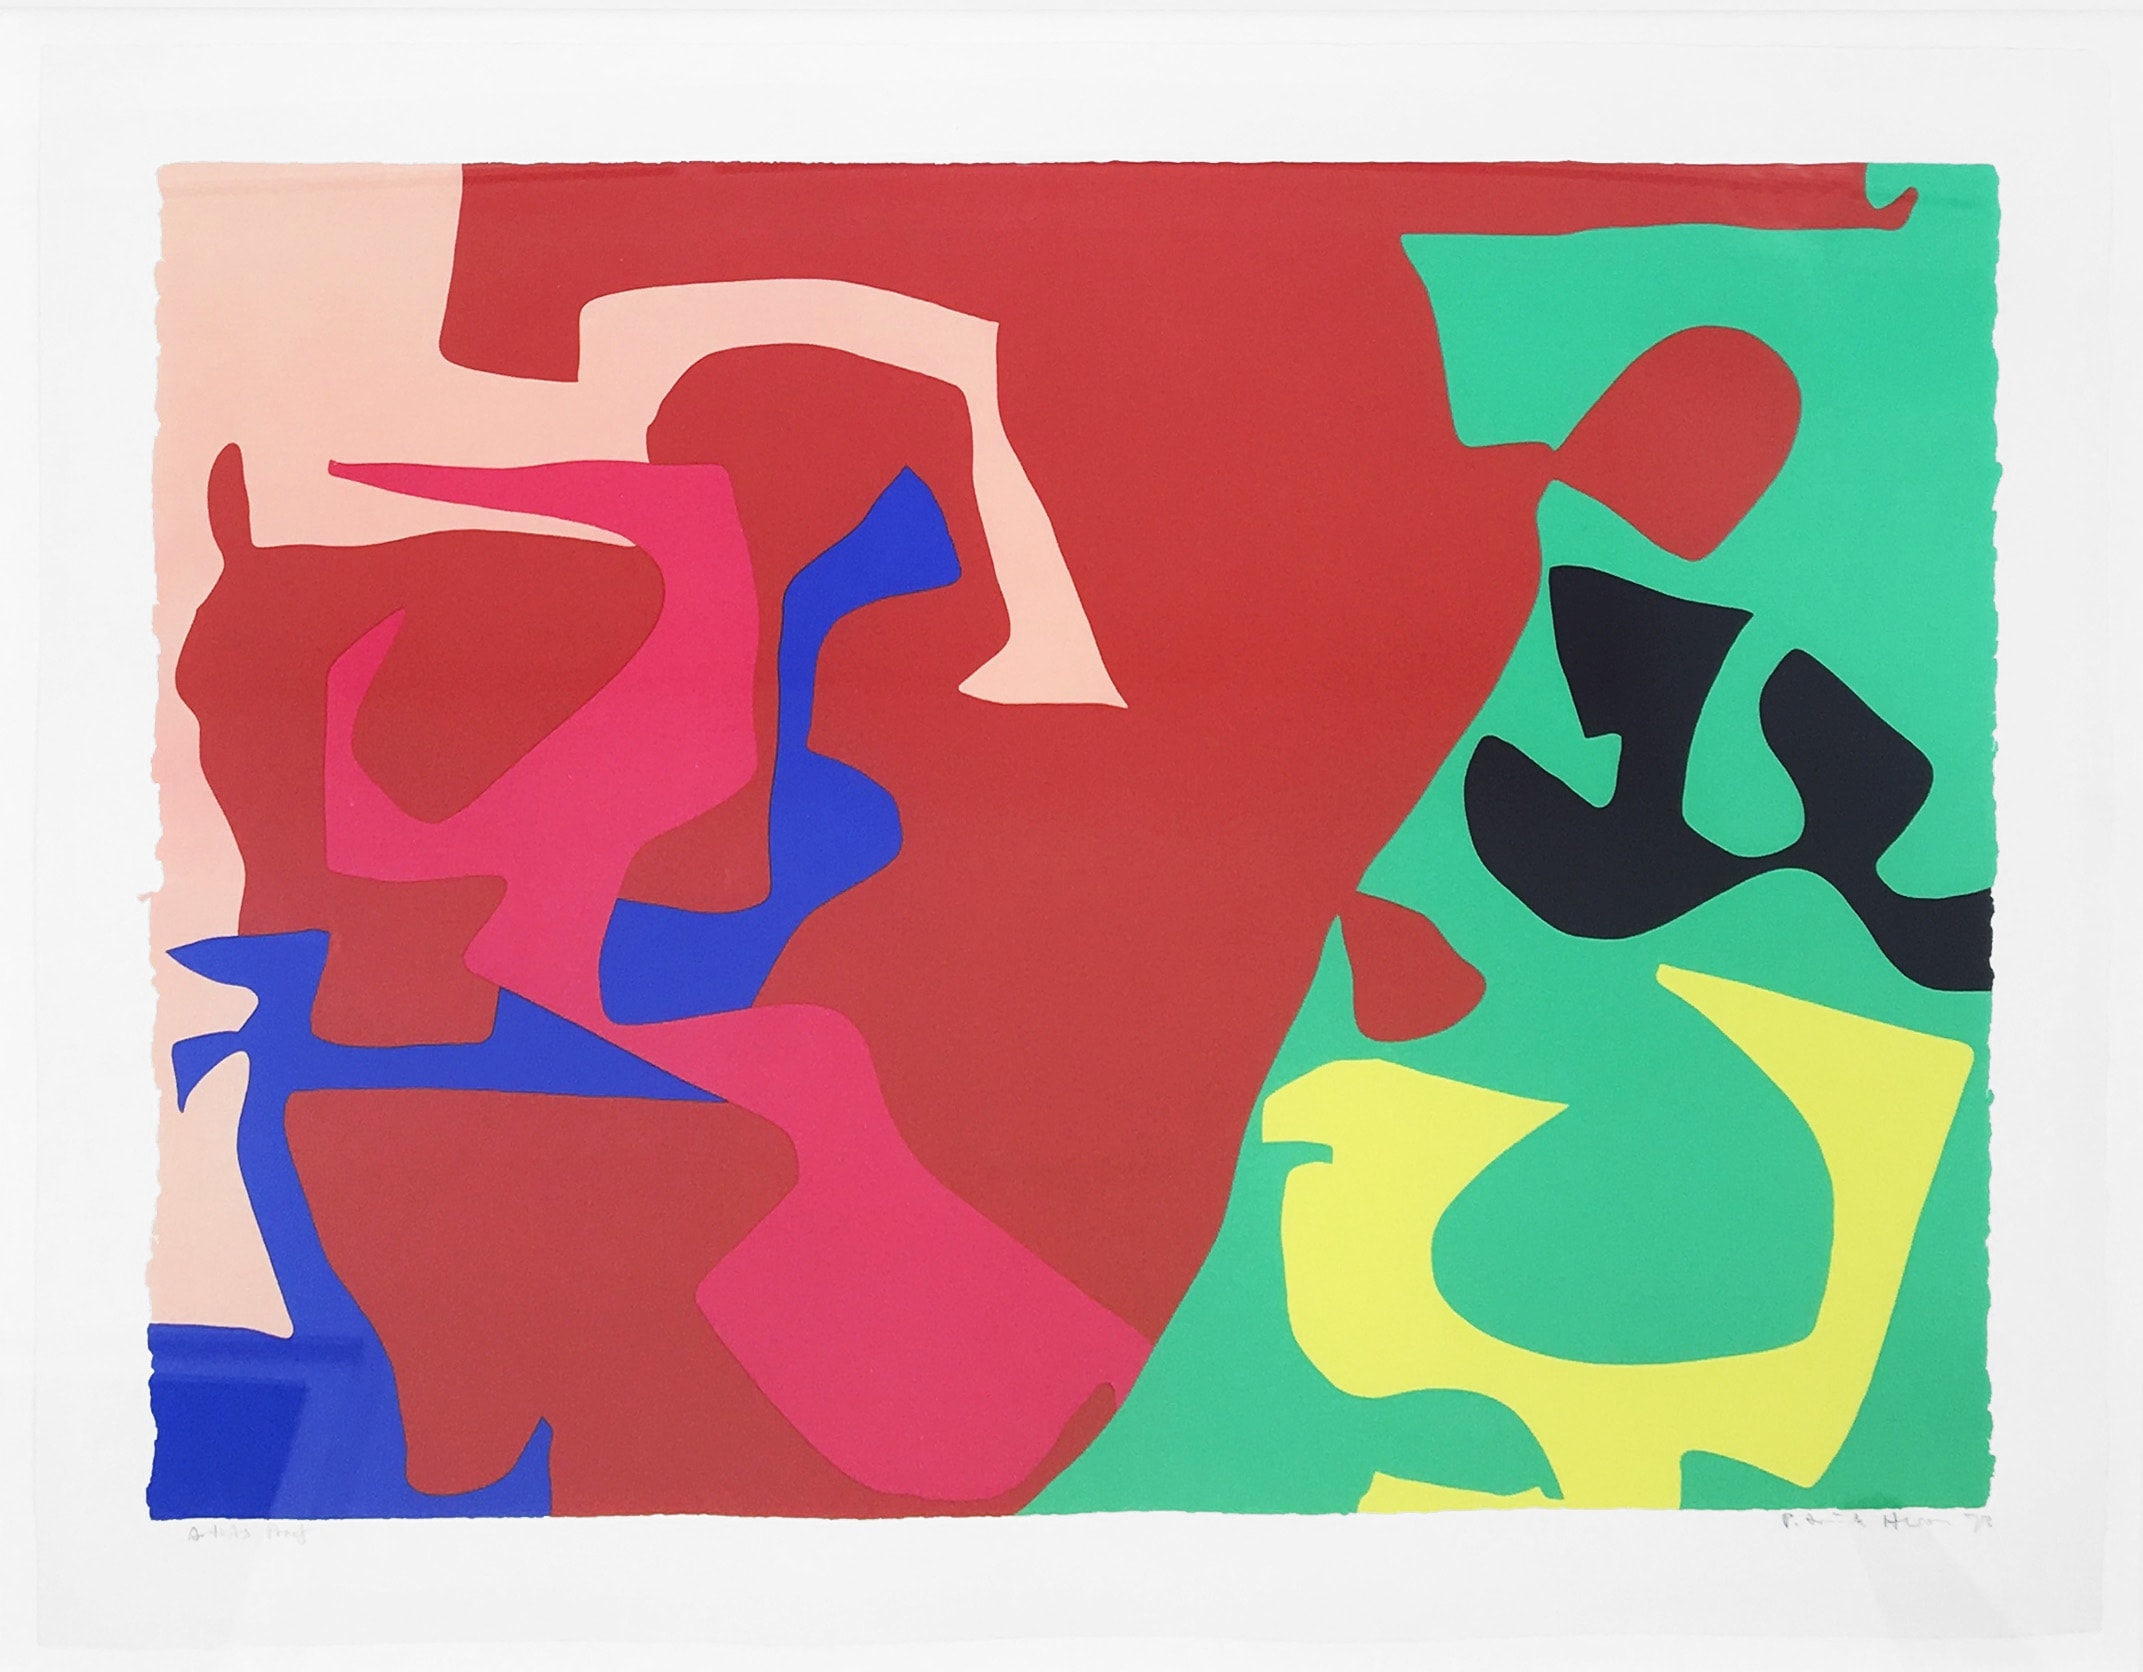 """<span class=""""link fancybox-details-link""""><a href=""""/artists/74-patrick-heron/works/1011-patrick-heron-january-1973-plate-7-1973/"""">View Detail Page</a></span><div class=""""artist""""><strong>Patrick Heron</strong></div> 1920 - 1999 <div class=""""title""""><em>January 1973: Plate 7</em>, 1973</div> <div class=""""signed_and_dated"""">signed and dated in pencil, verso is the publishers stamp<br /> from the edition of 72</div> <div class=""""medium"""">screenprint</div> <div class=""""dimensions"""">58.6 x 81.4cm</div>"""